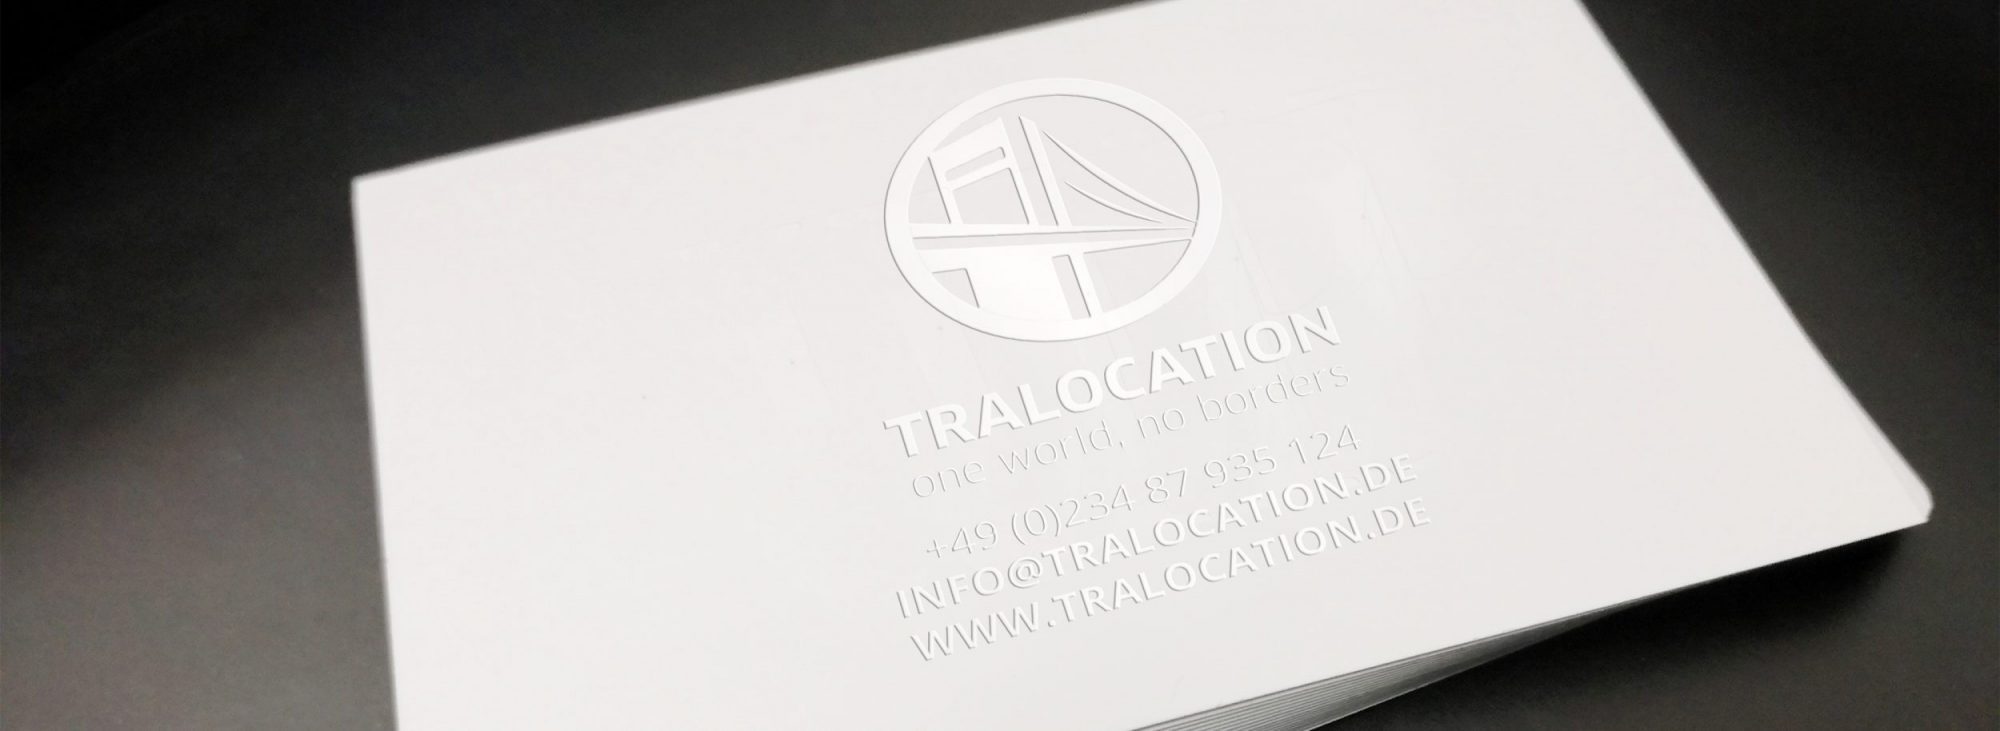 Tralocation GmbH - Header 05